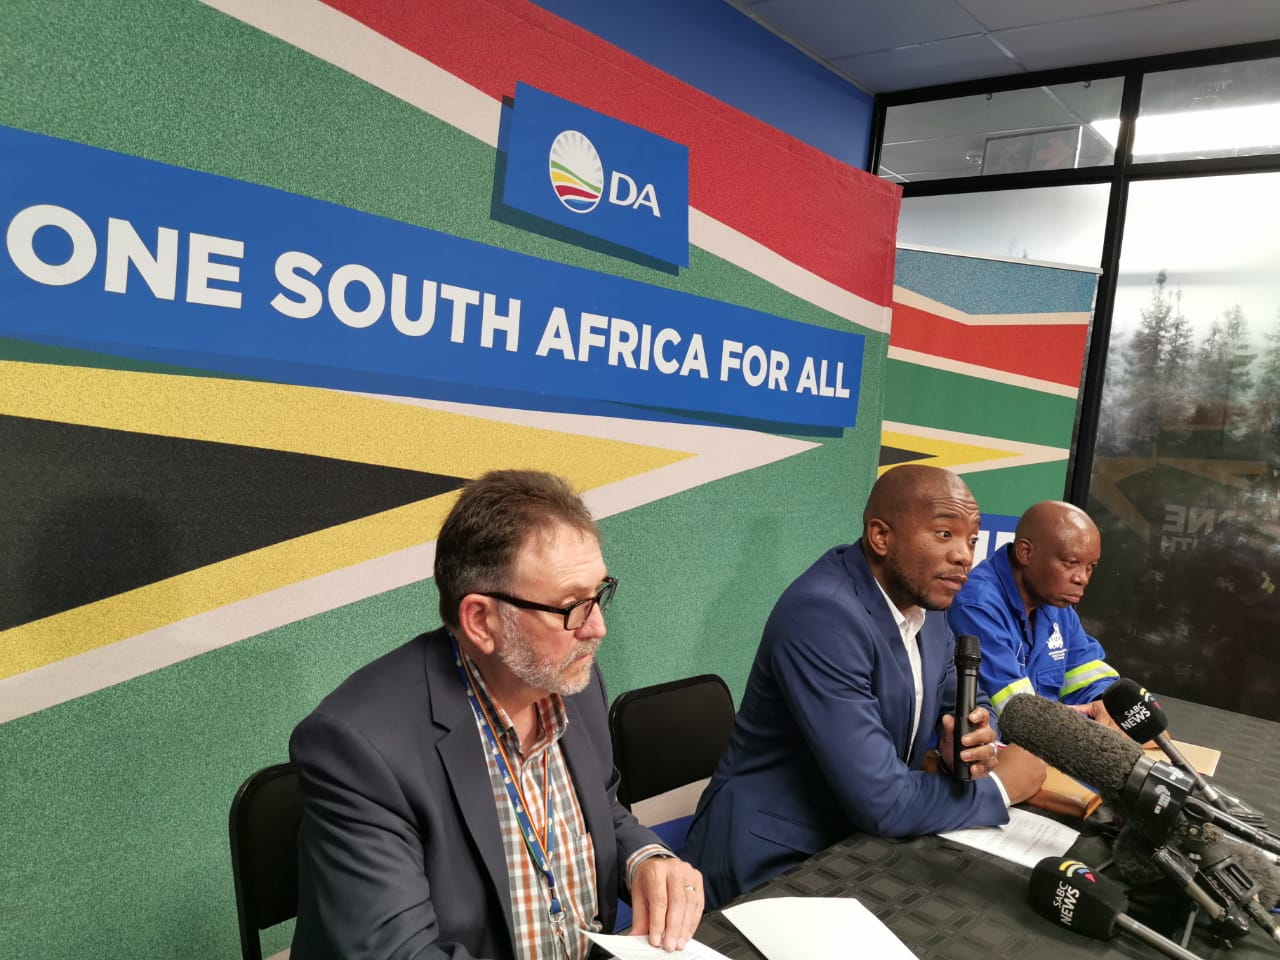 Rescuing and reforming SA's economy is our primary focus